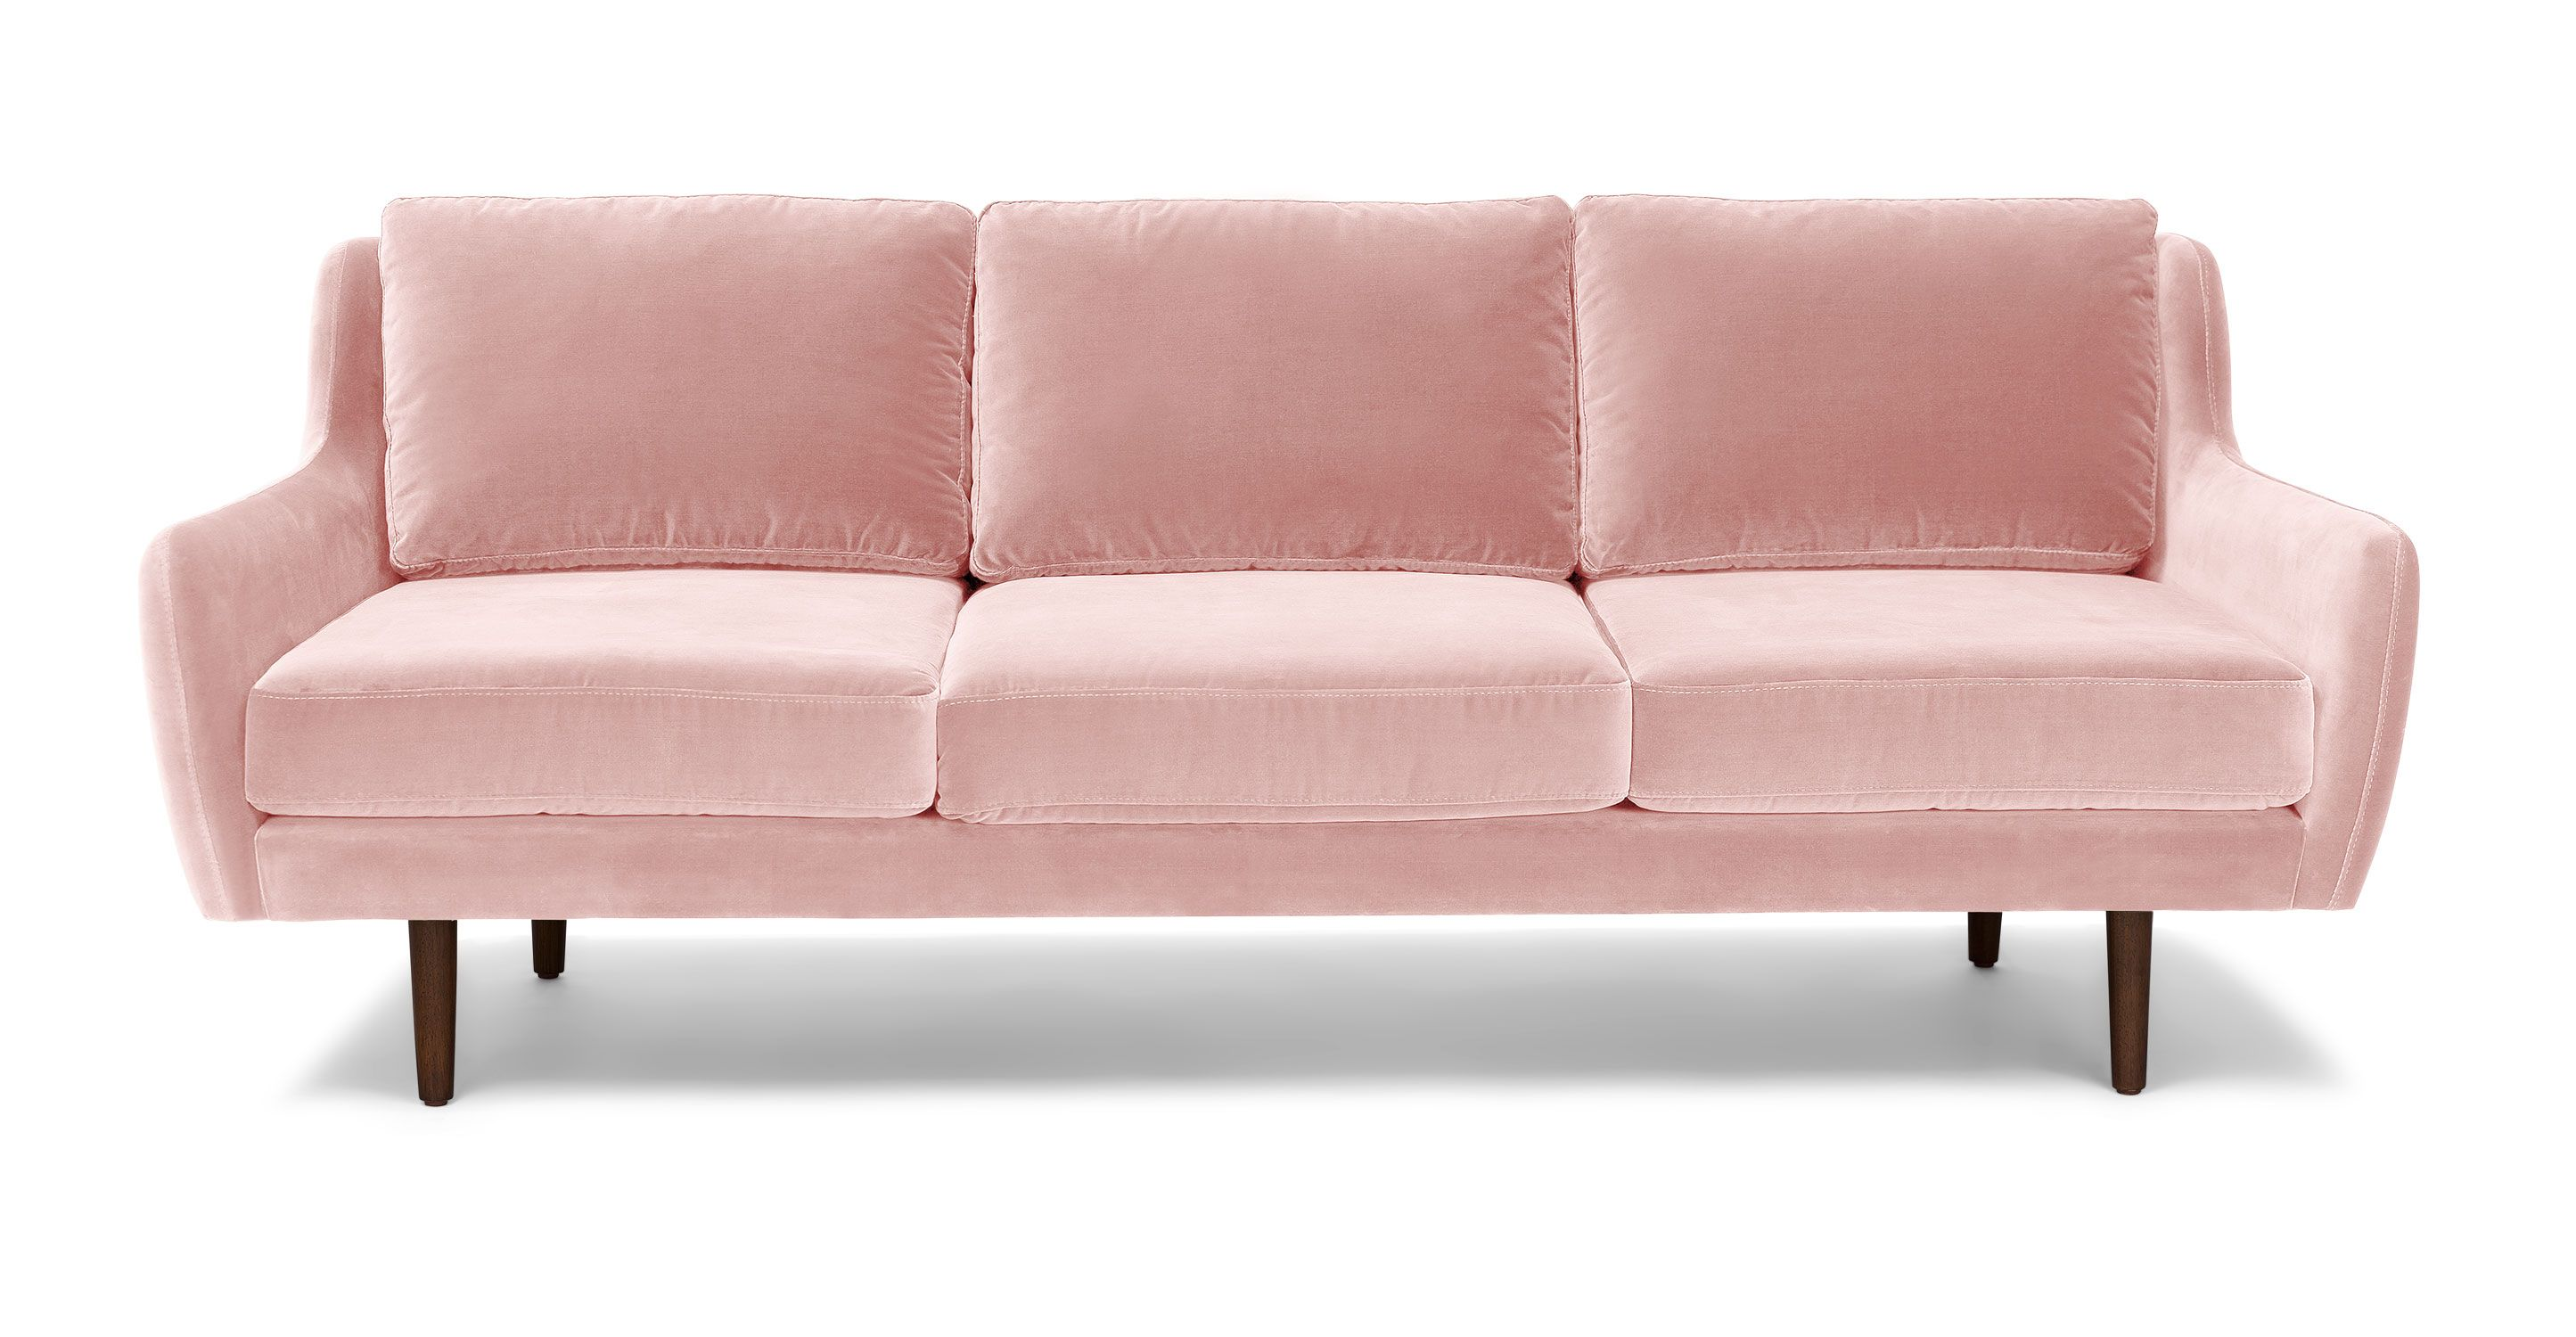 contemporary furniture sofa. pink velvet sofa walnut wood legs article matrix contemporary furniture u